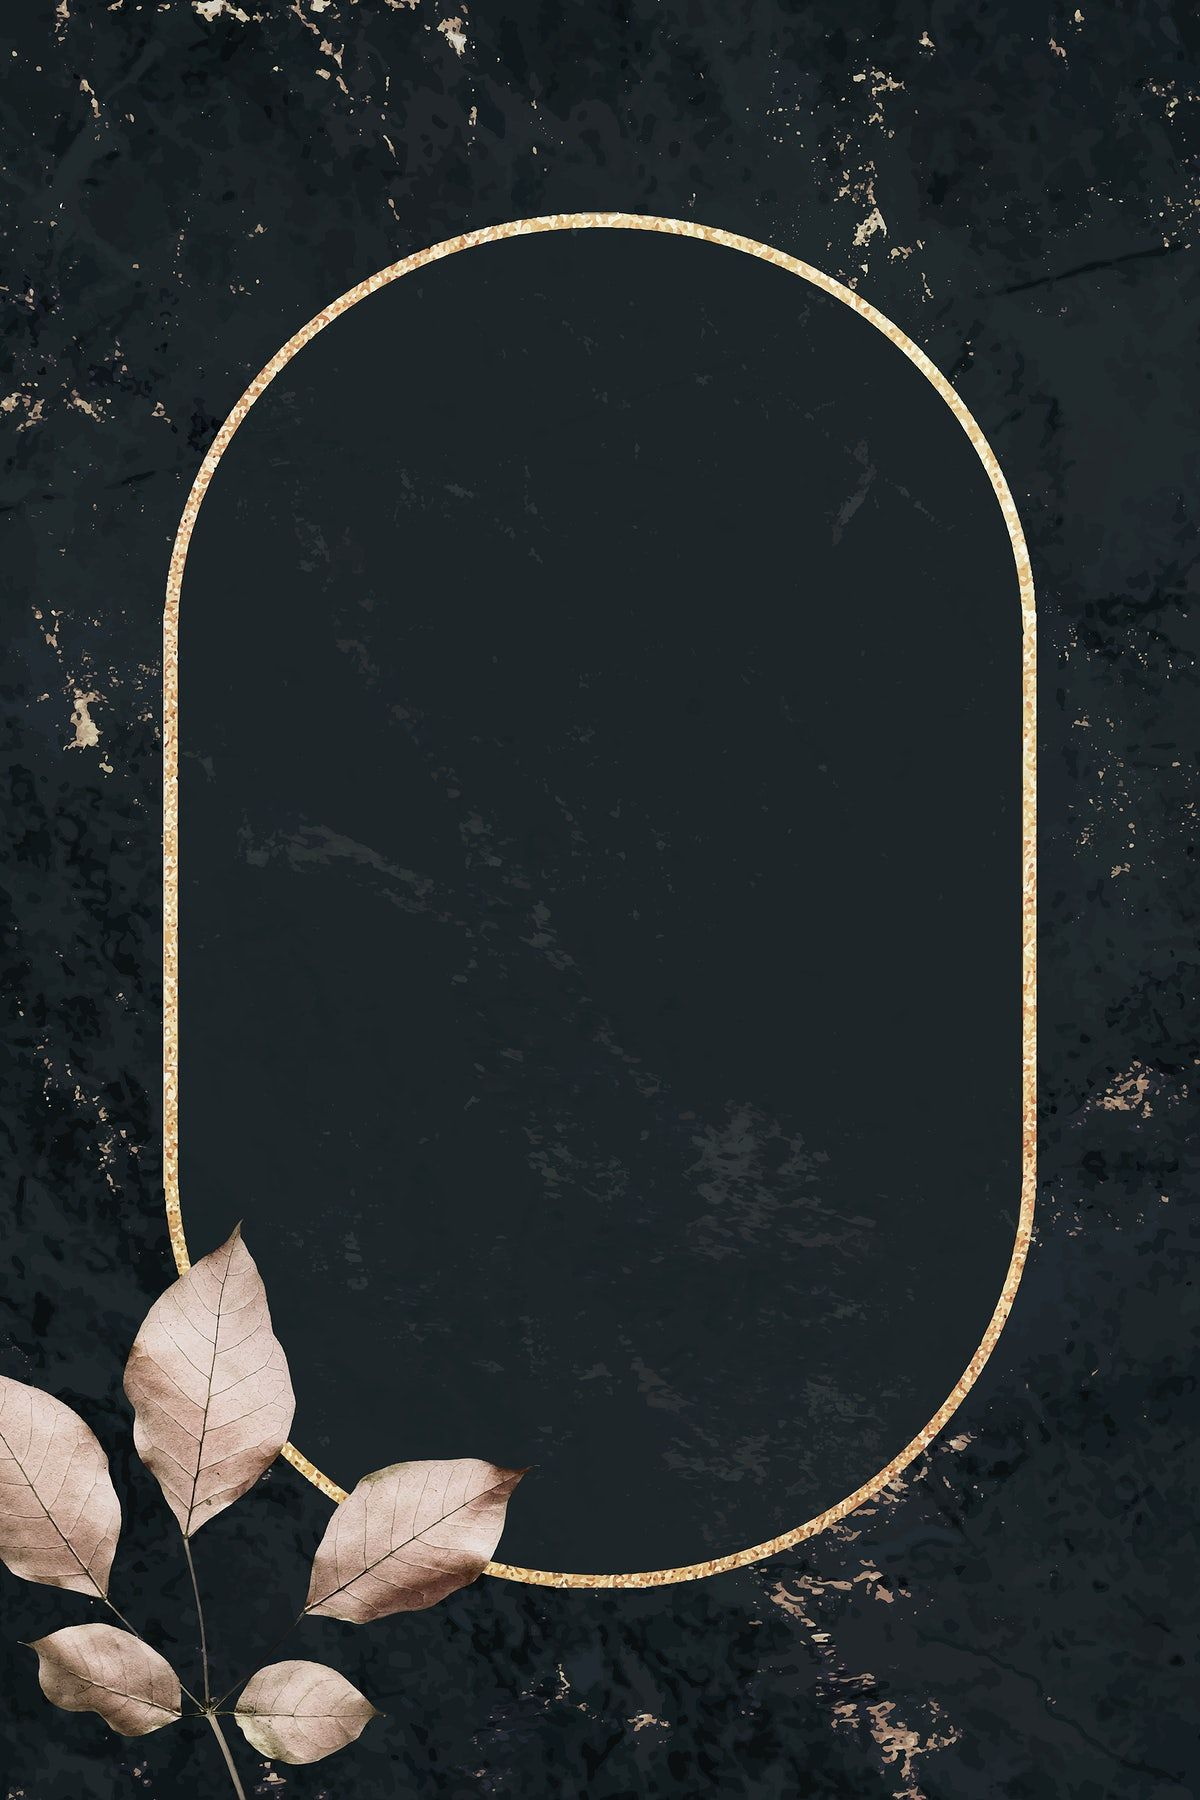 Download Premium Illustration Of Oval Gold Frame With Foliage Pattern On A In 2020 Gold Frame Black Marble Background Marble Texture